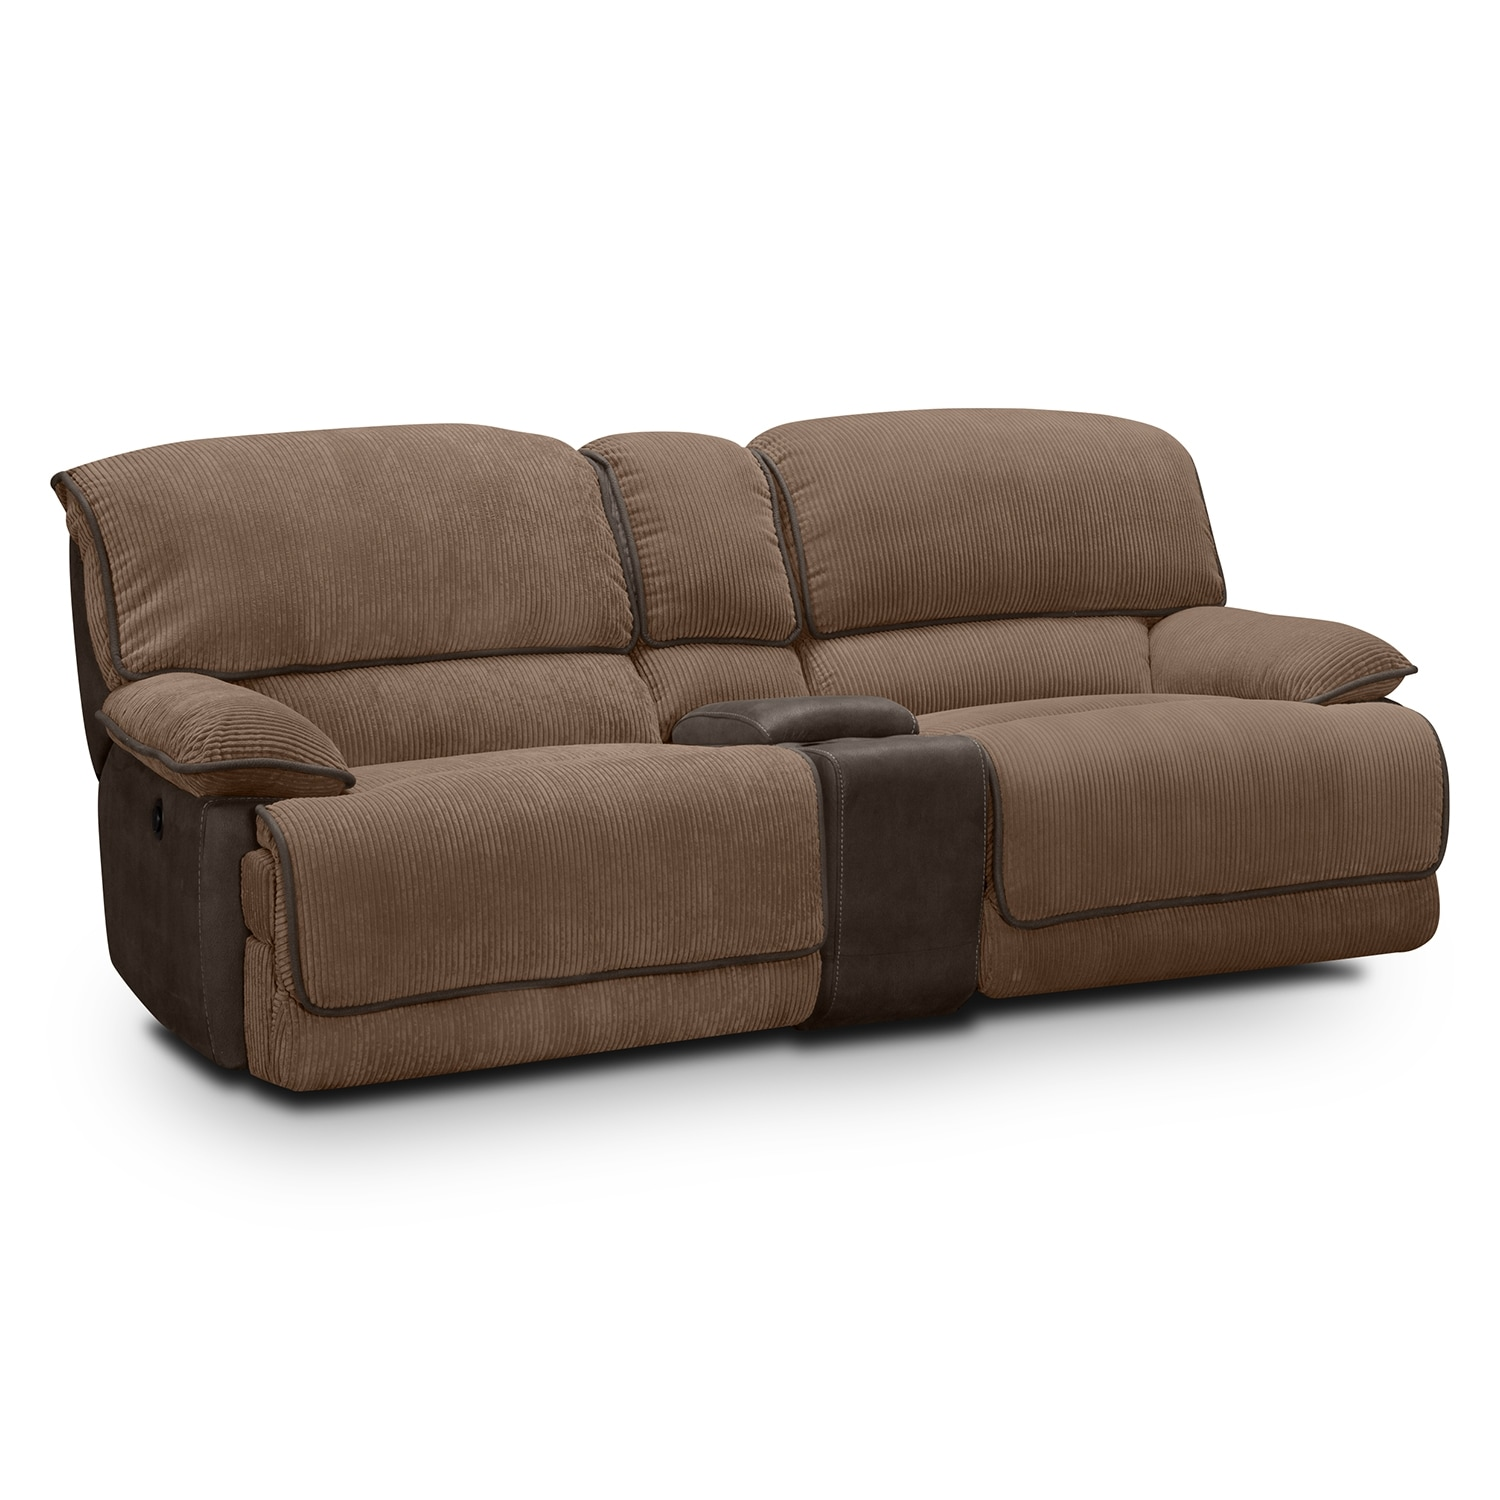 Del Mar Upholstery 3 Pc Power Reclining Sofa With Console Value City Furniture